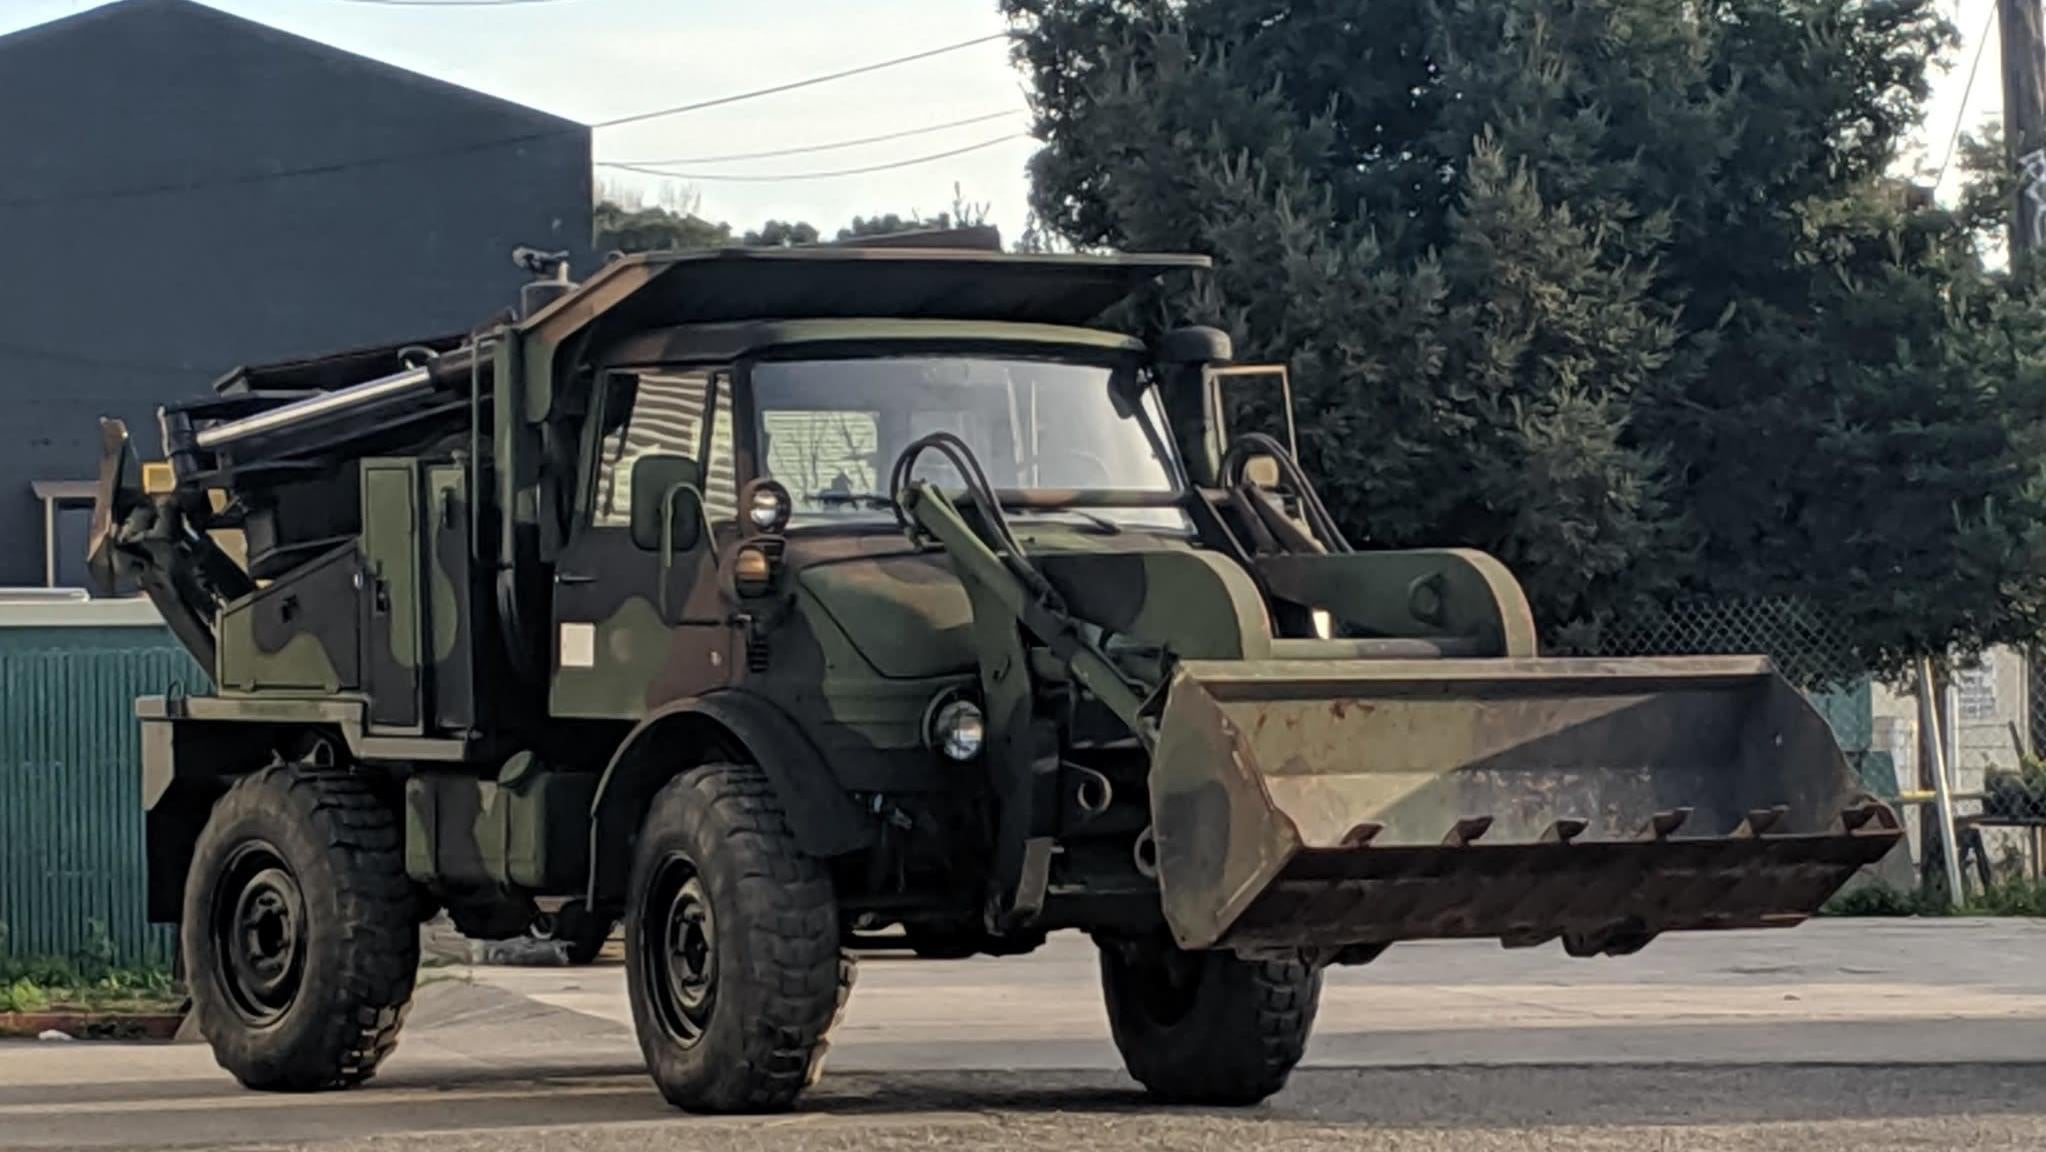 I Dare You To Daily This Ex-American Military Unimog